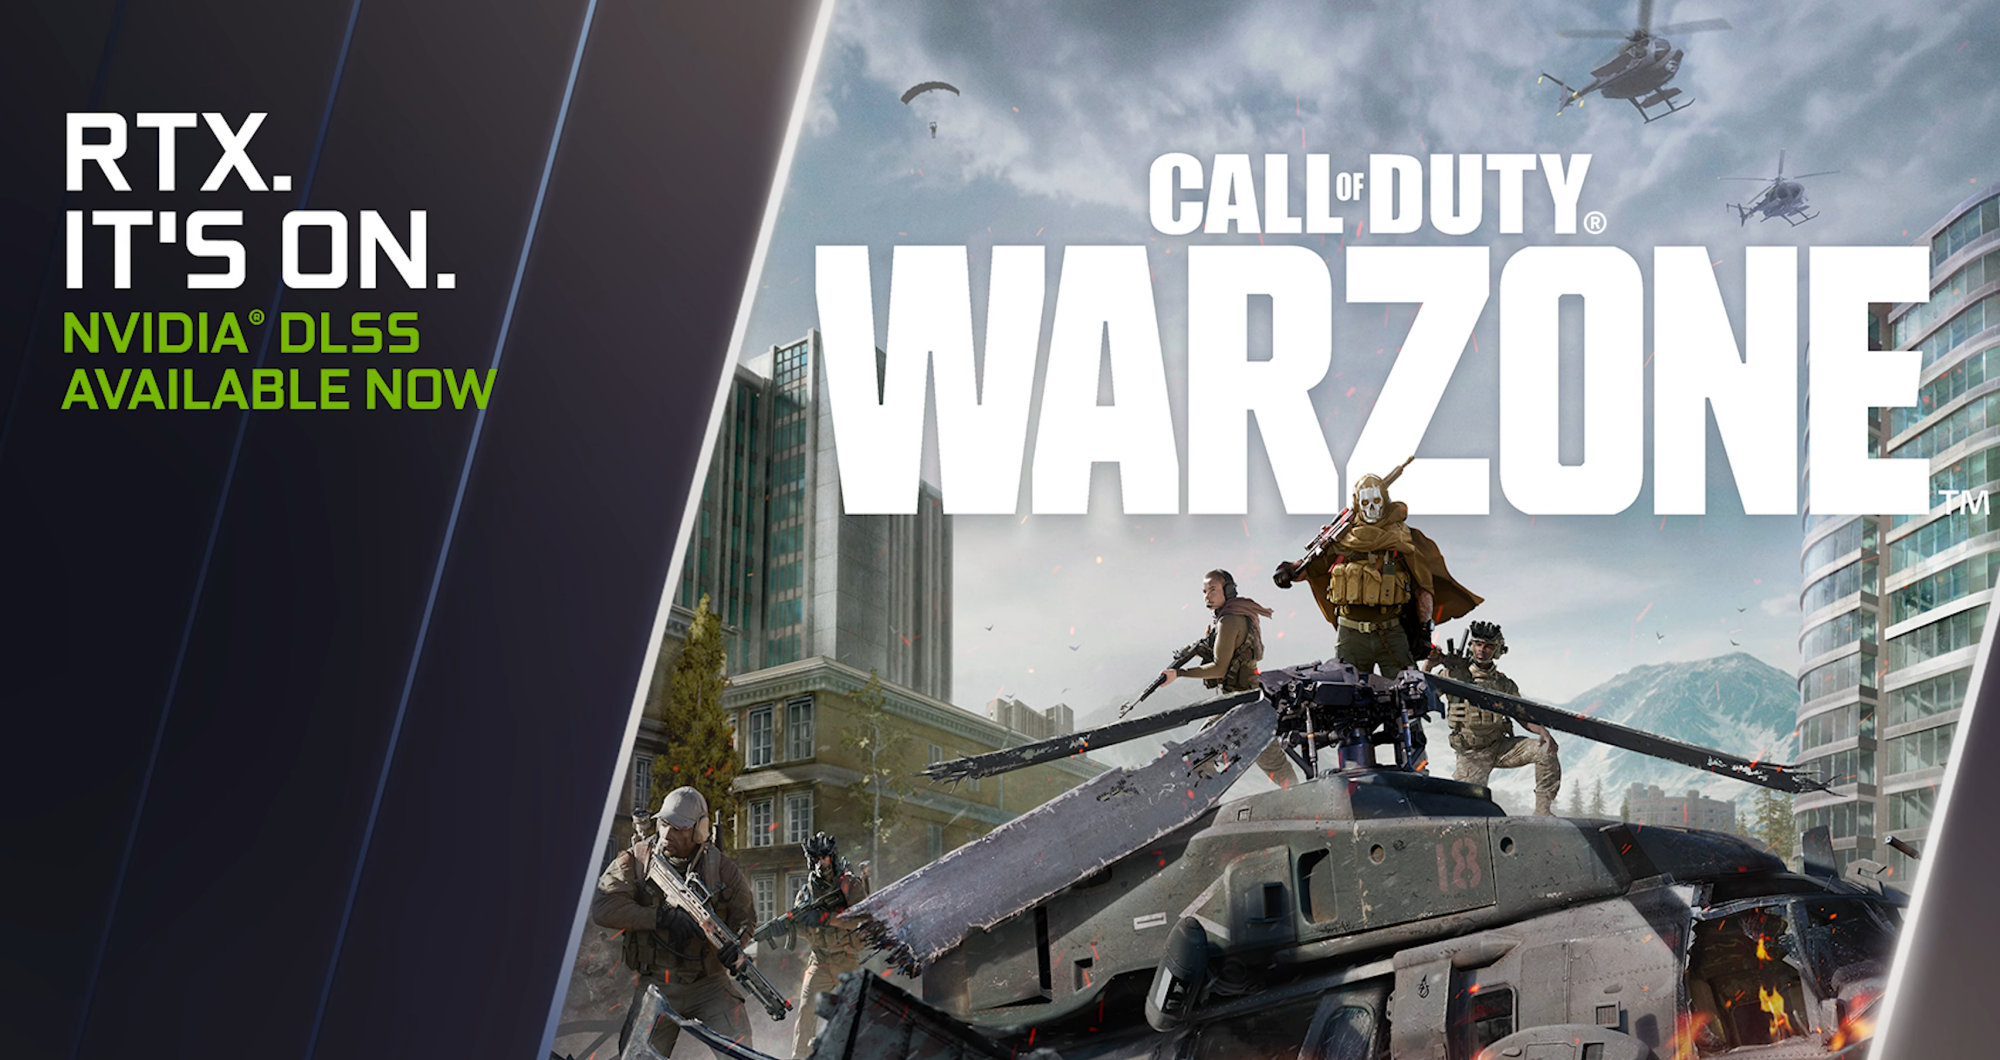 NVIDIA enables DLSS in Call of Duty Warzone and Modern Warfare – VideoCardz.com